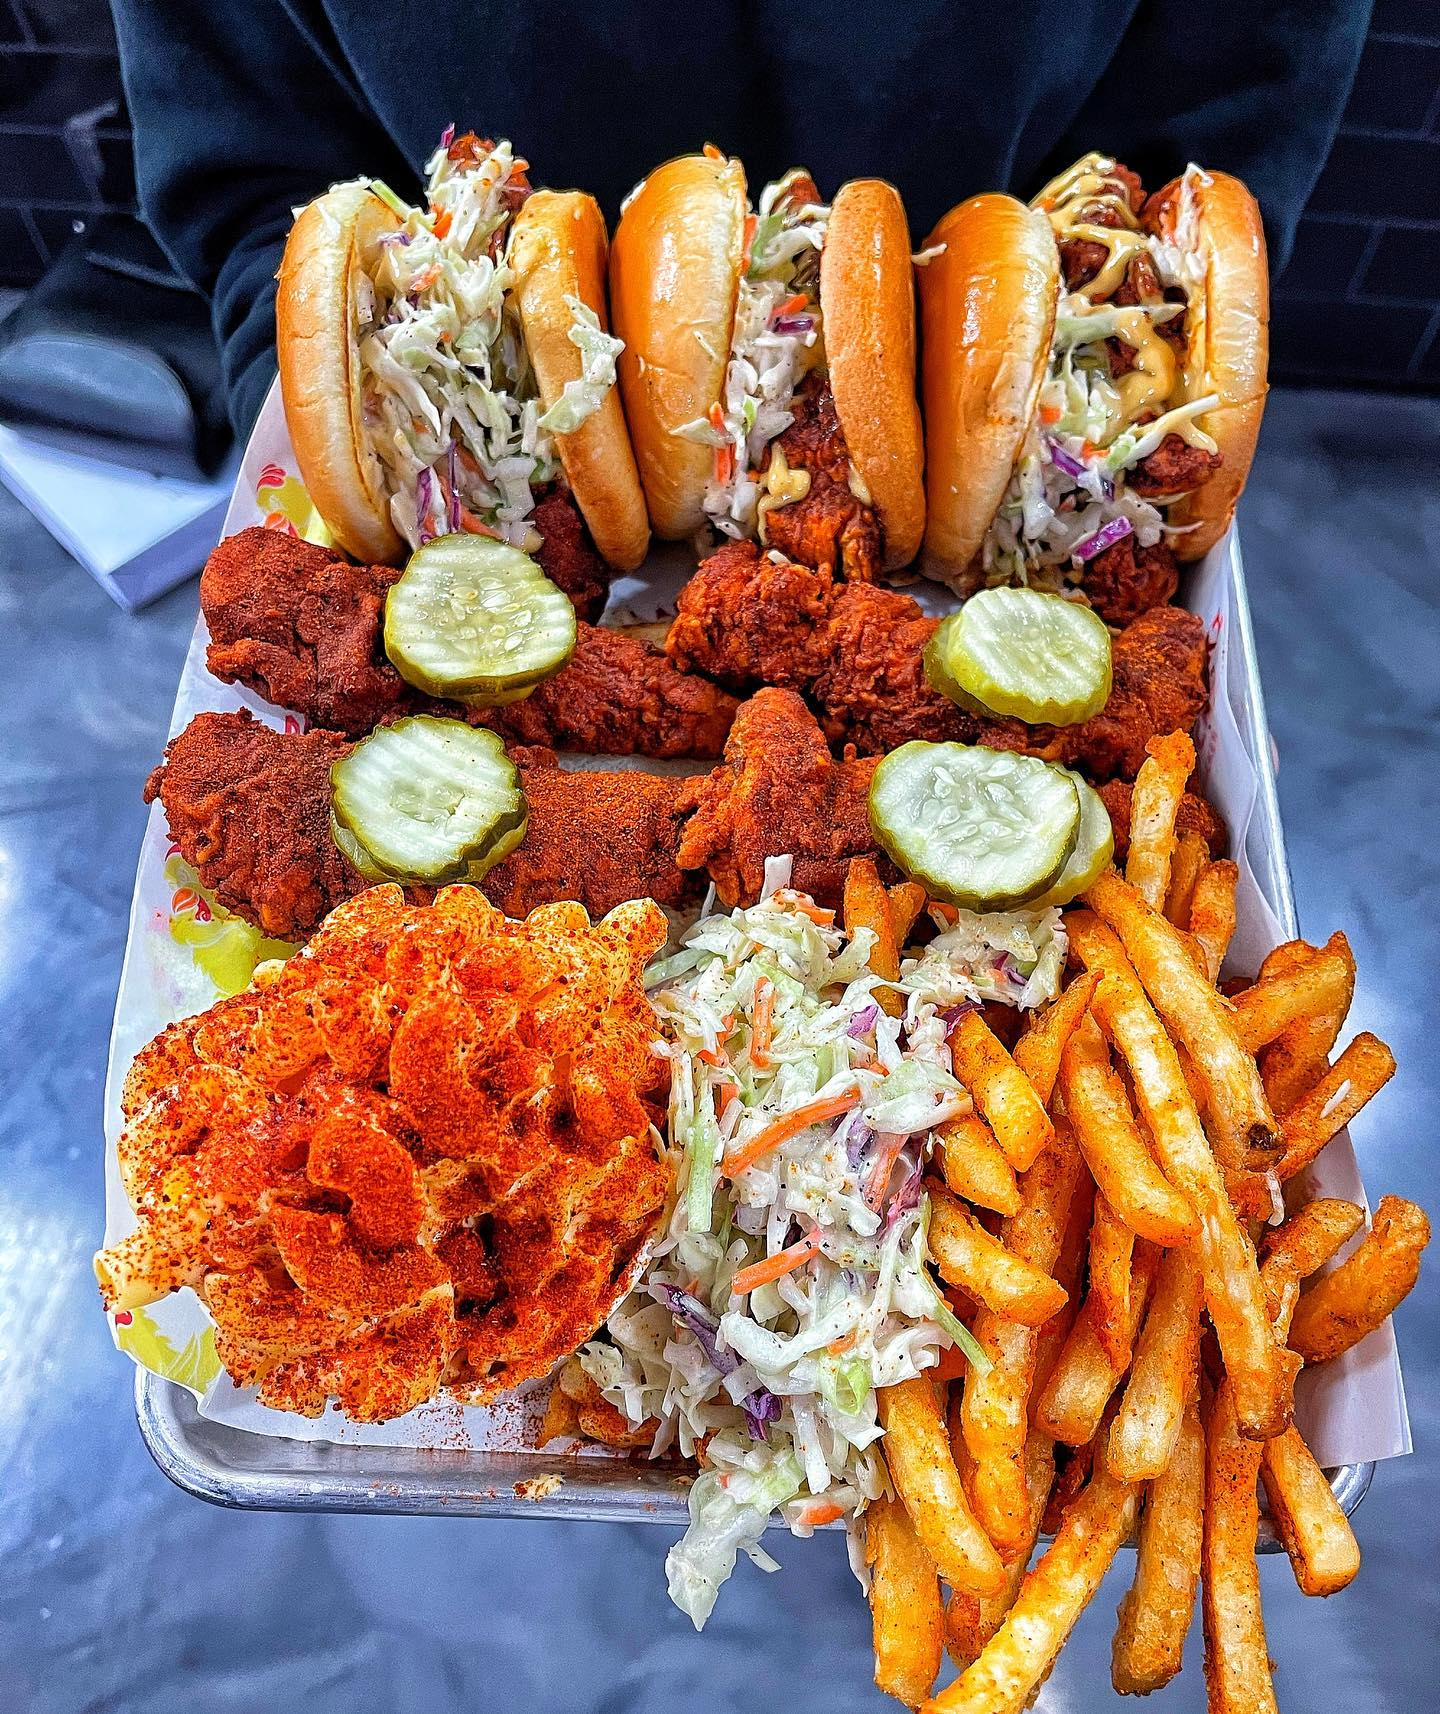 Fried chicken sliders, tenders with pickles on top, angry mac and cheese, coleslaw, and fries in a box.